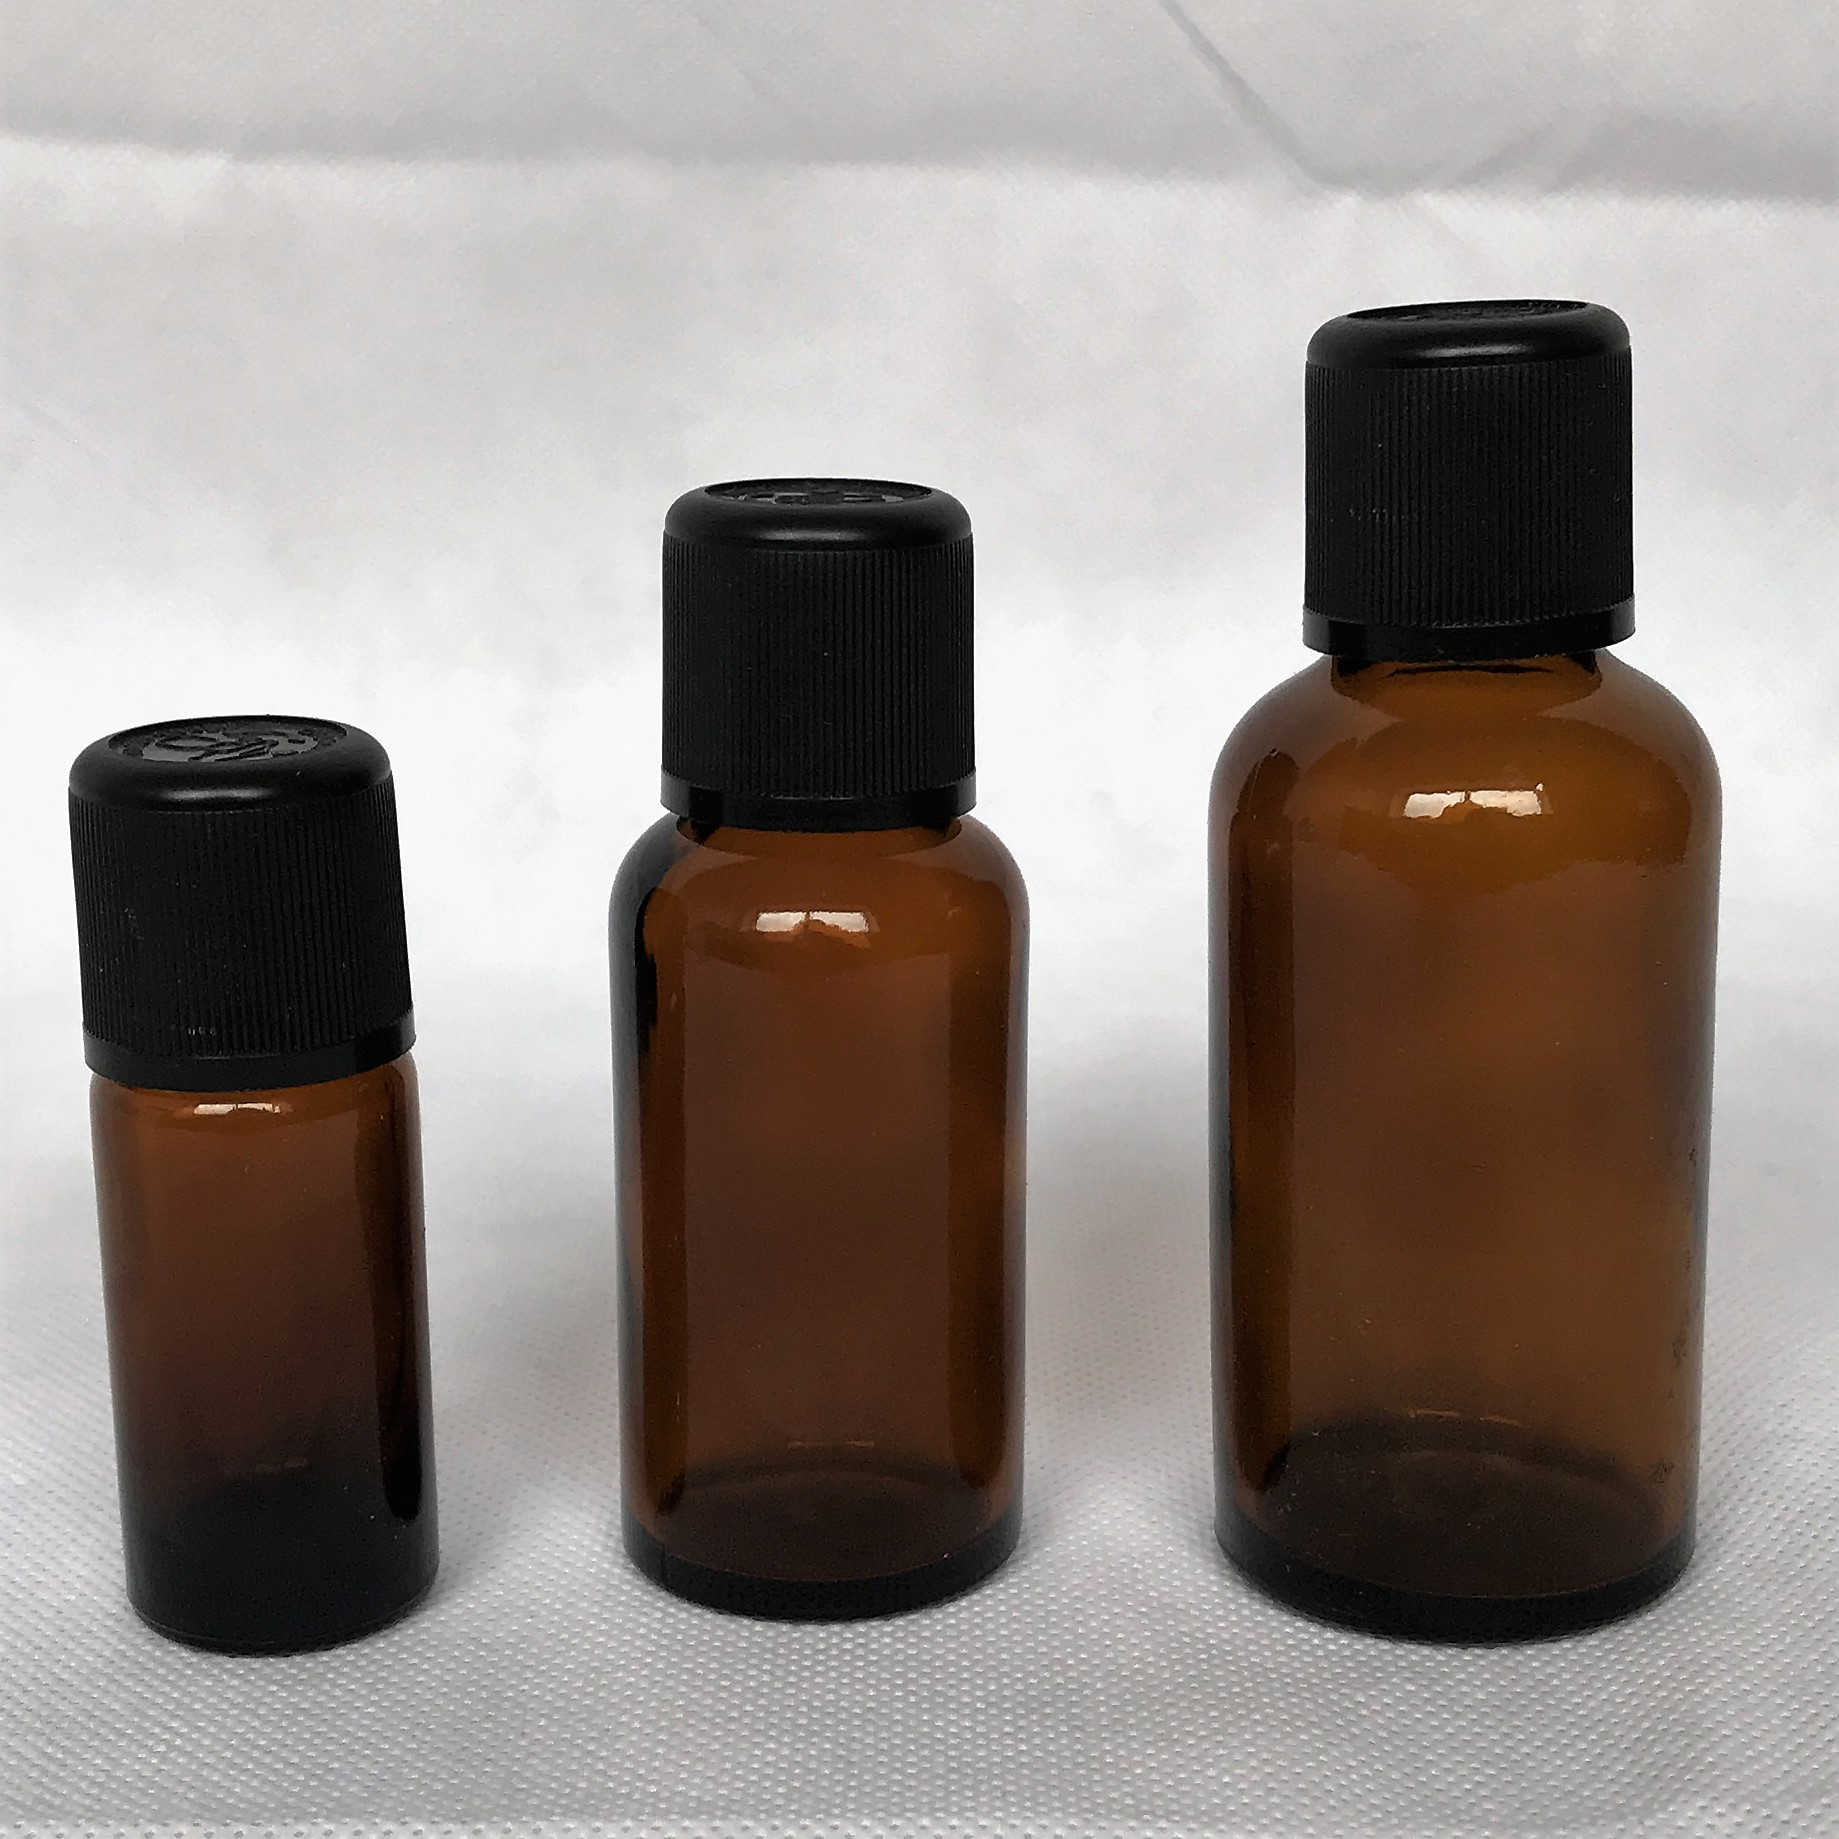 amber essential oil bottle new seasons natural products ltdamber essential oil bottle amber bottles with cap